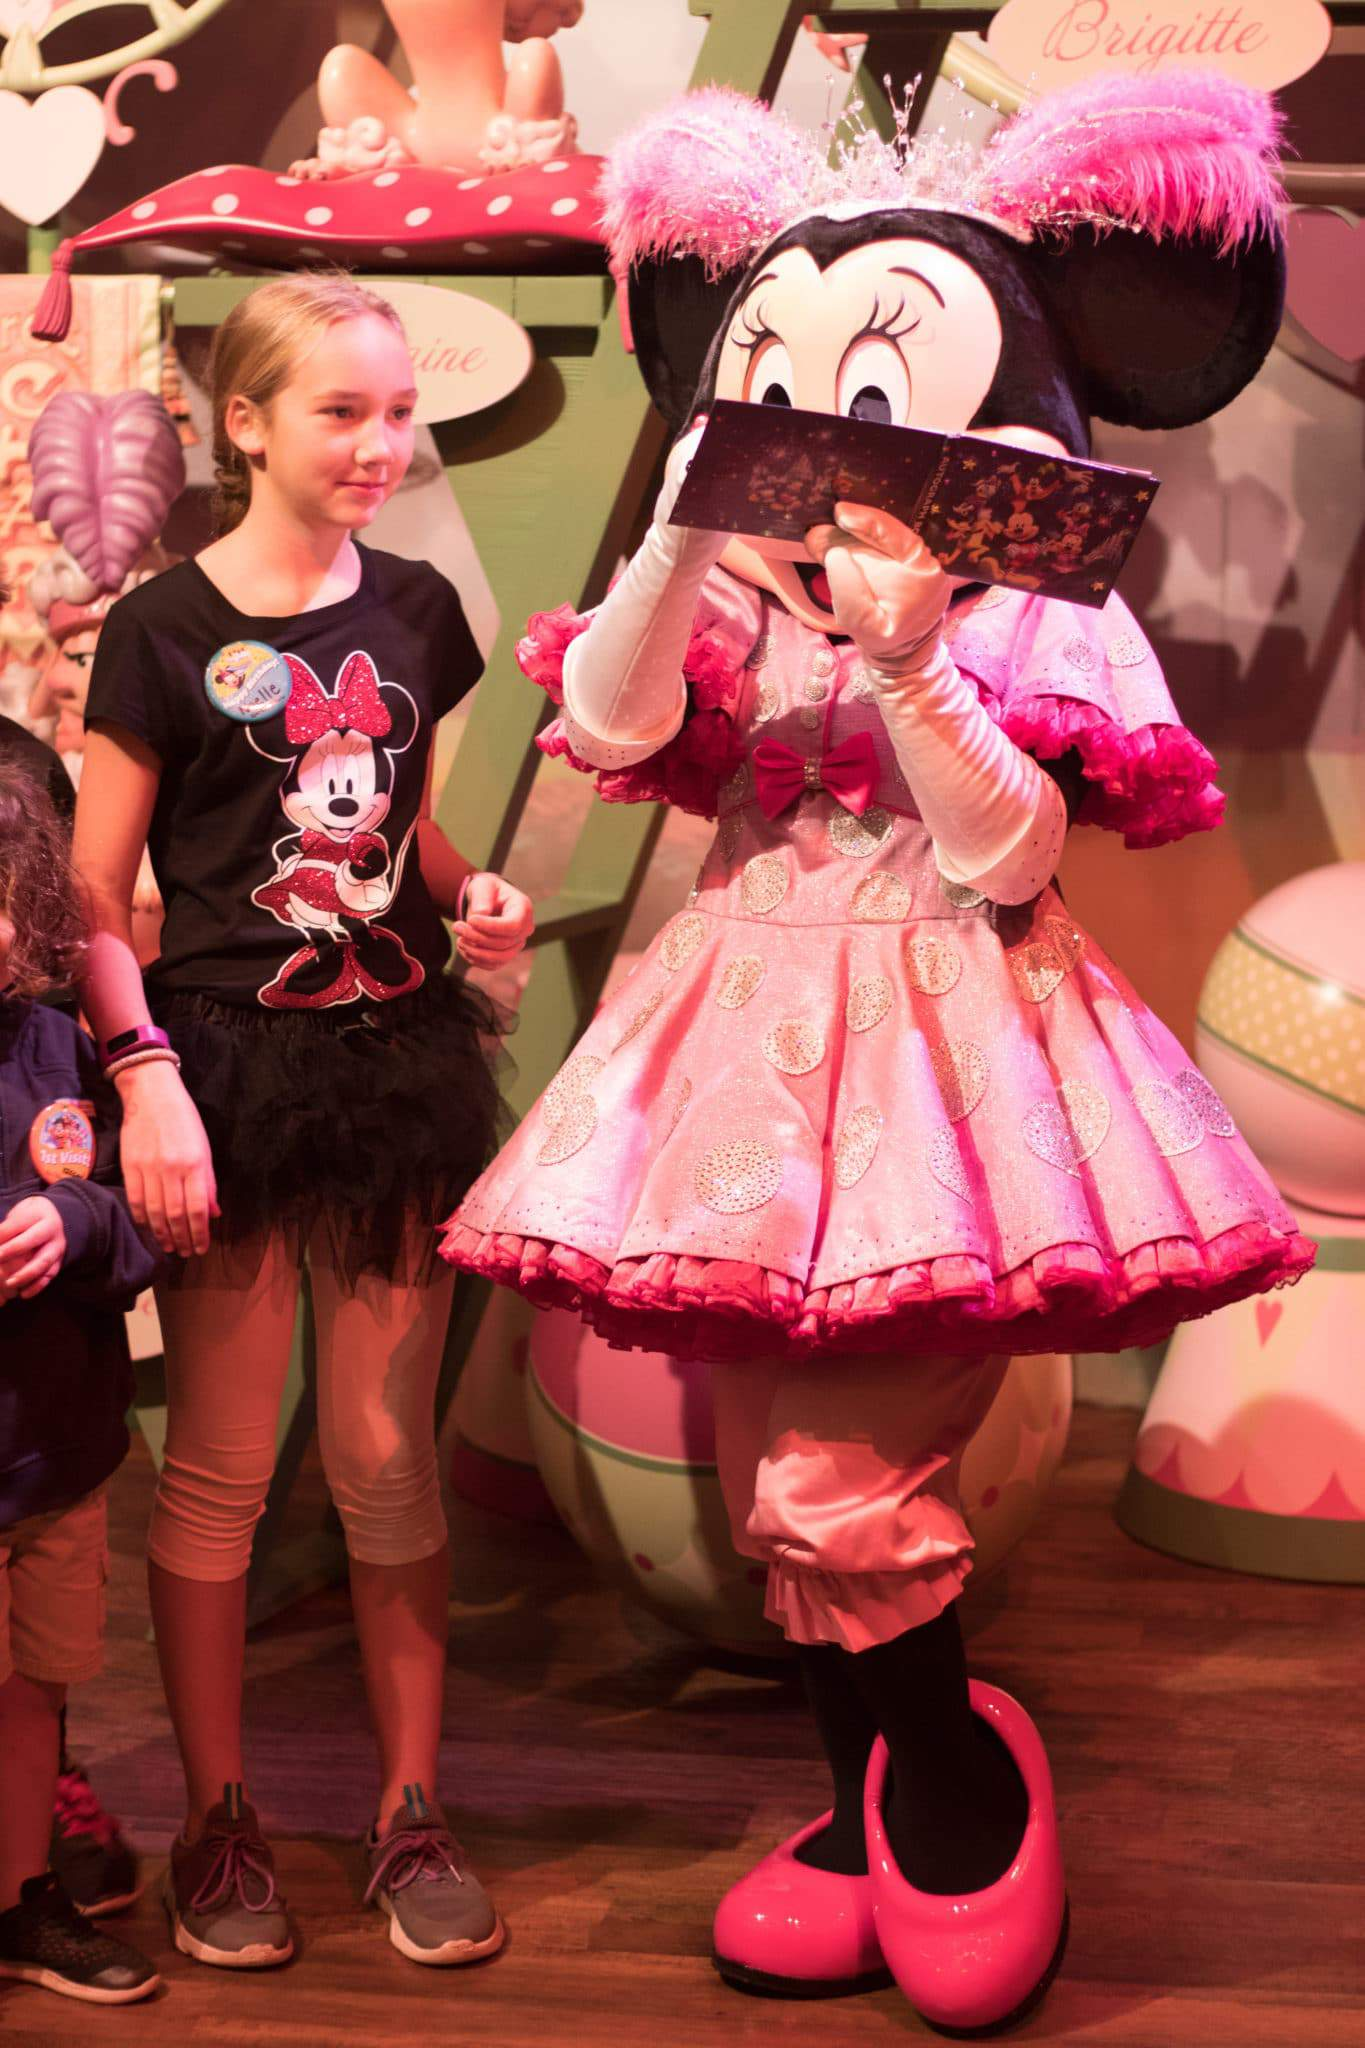 VIsiting with Minnie Mouse